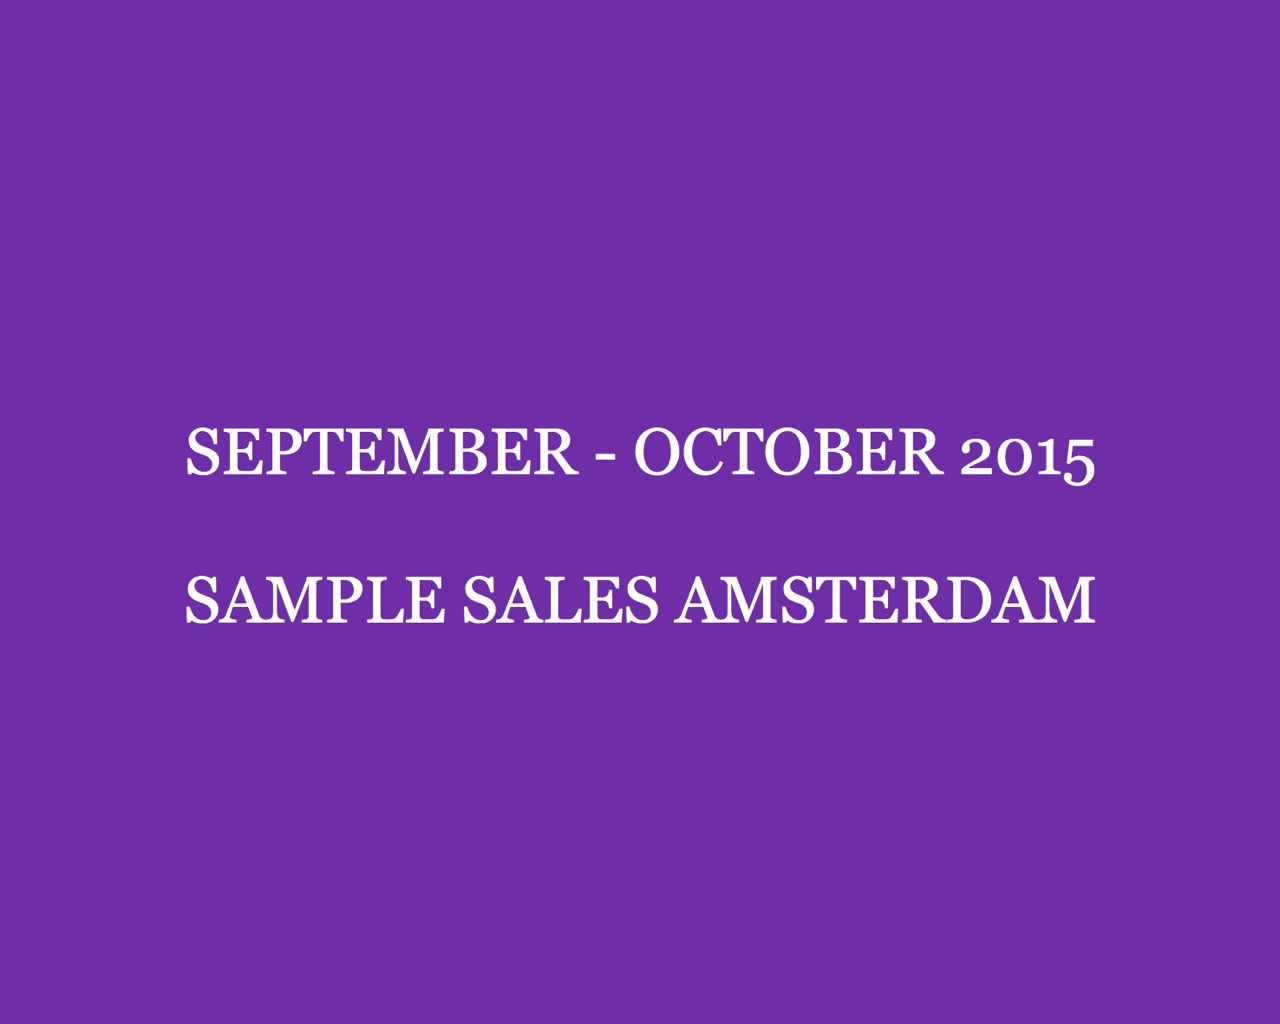 september-2015-sample-sales-amsterdam-style-barista-amsterdam-sample-sales-october-2015-sample-sales-amsterdam